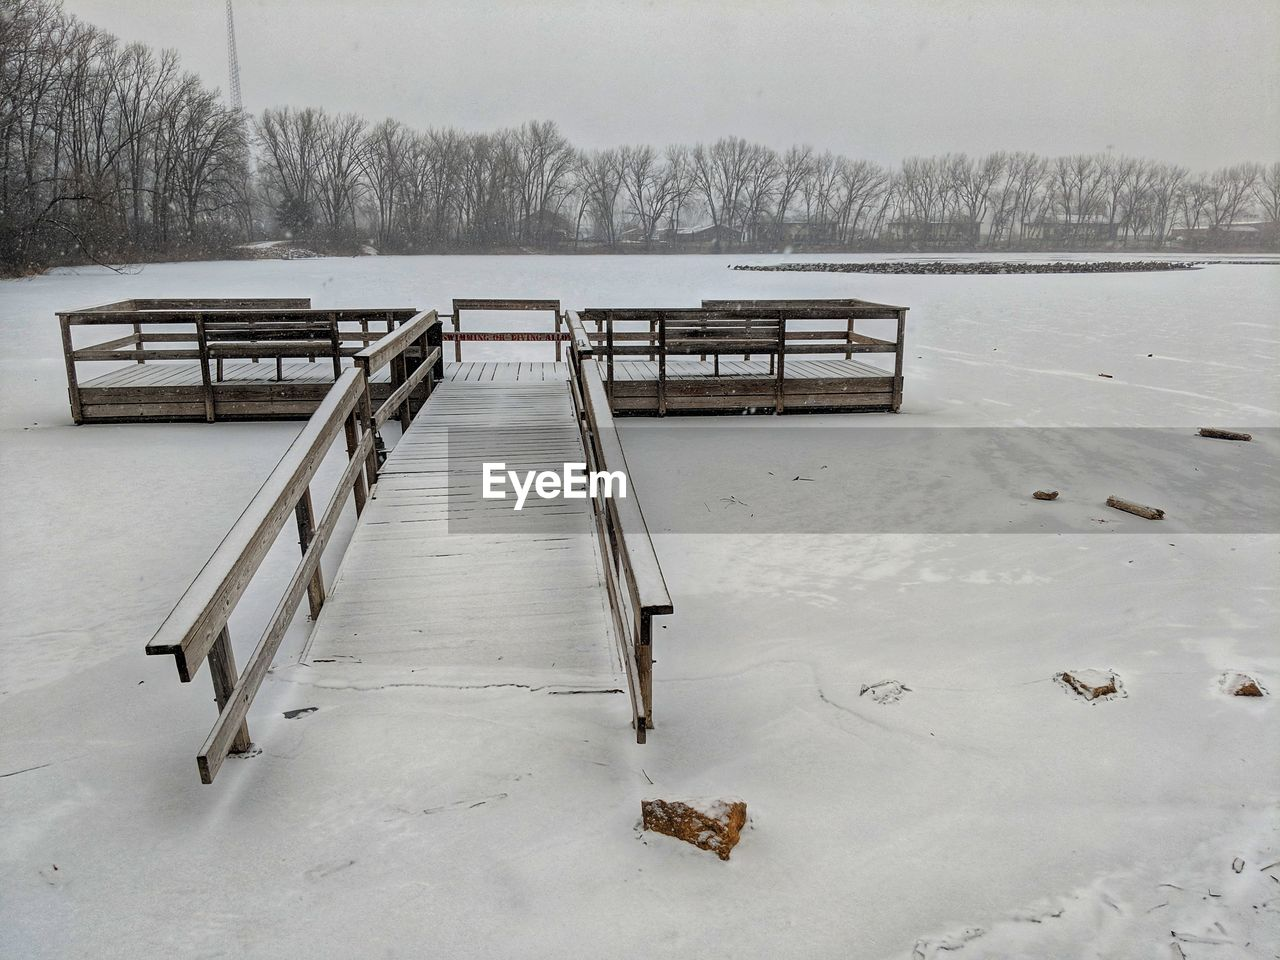 winter, snow, cold temperature, no people, day, absence, nature, empty, tranquility, scenics - nature, wood - material, railing, water, seat, outdoors, beauty in nature, bench, tranquil scene